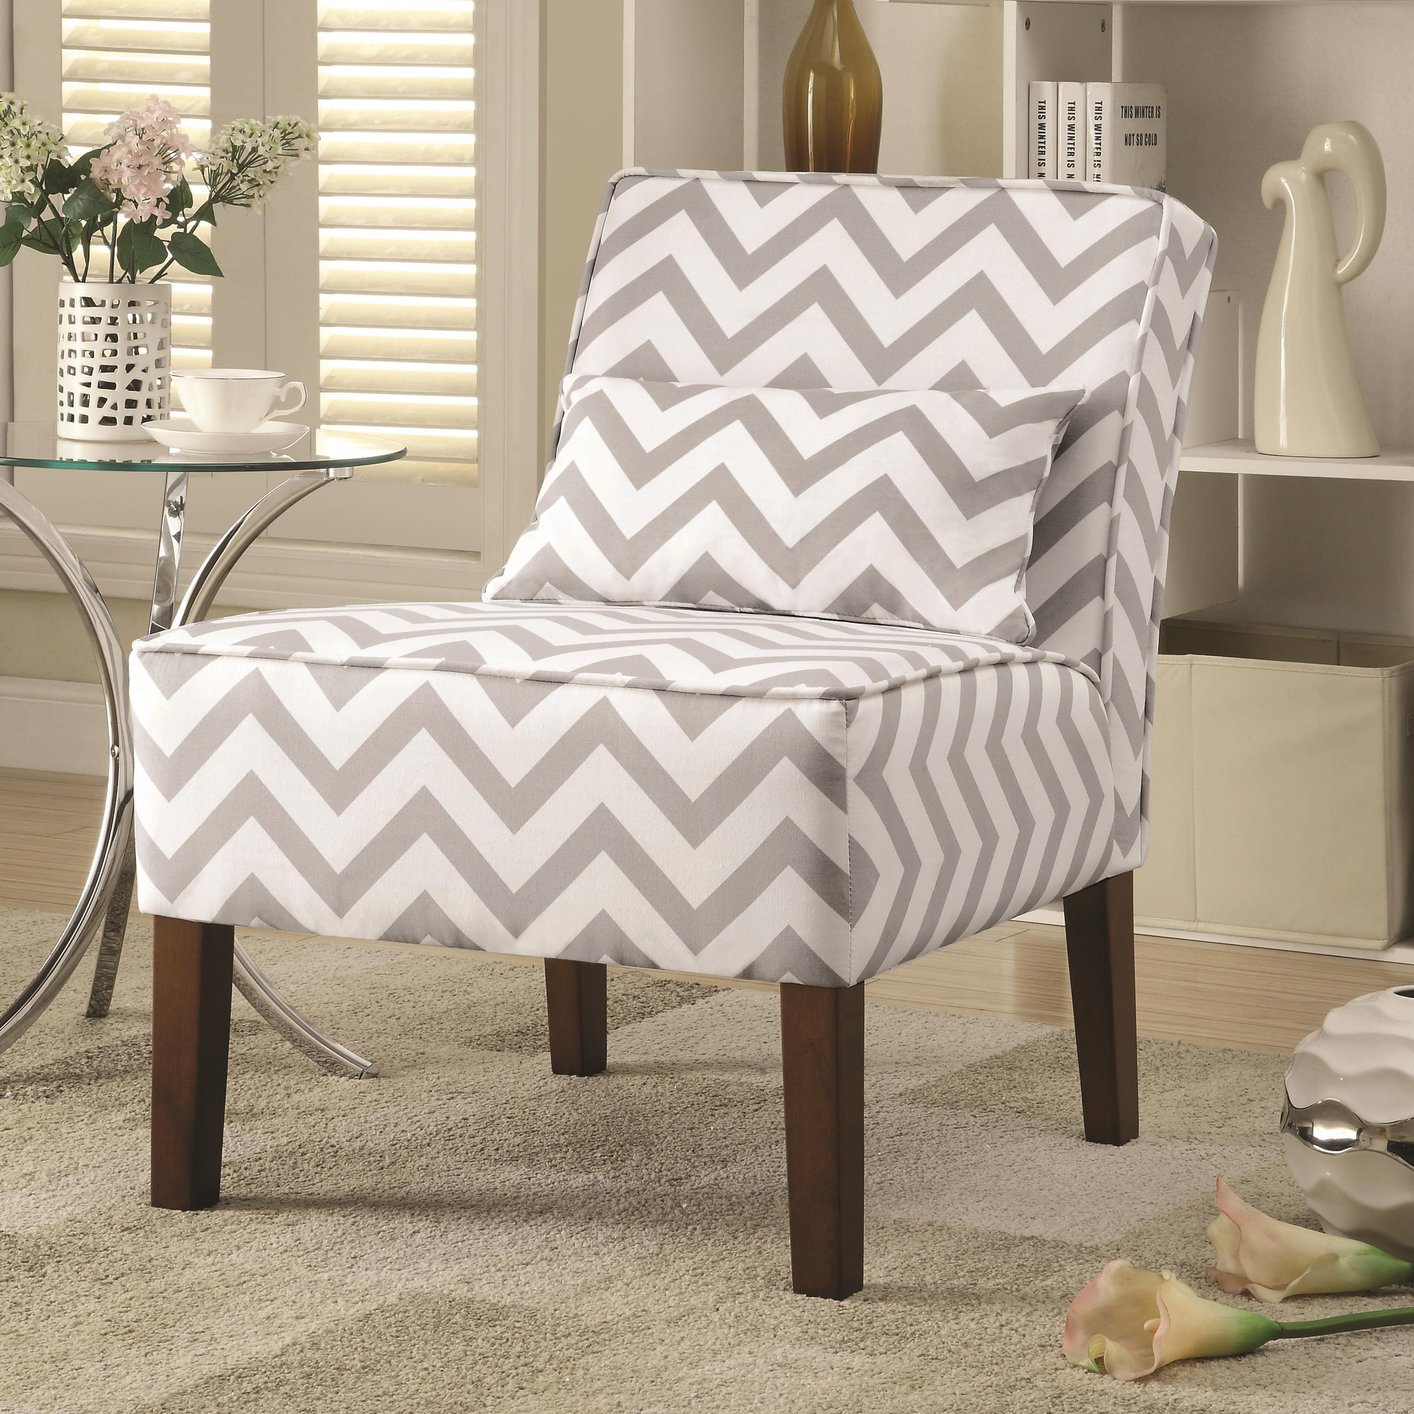 Grey Patterned Accent Chair Awesome Decoration